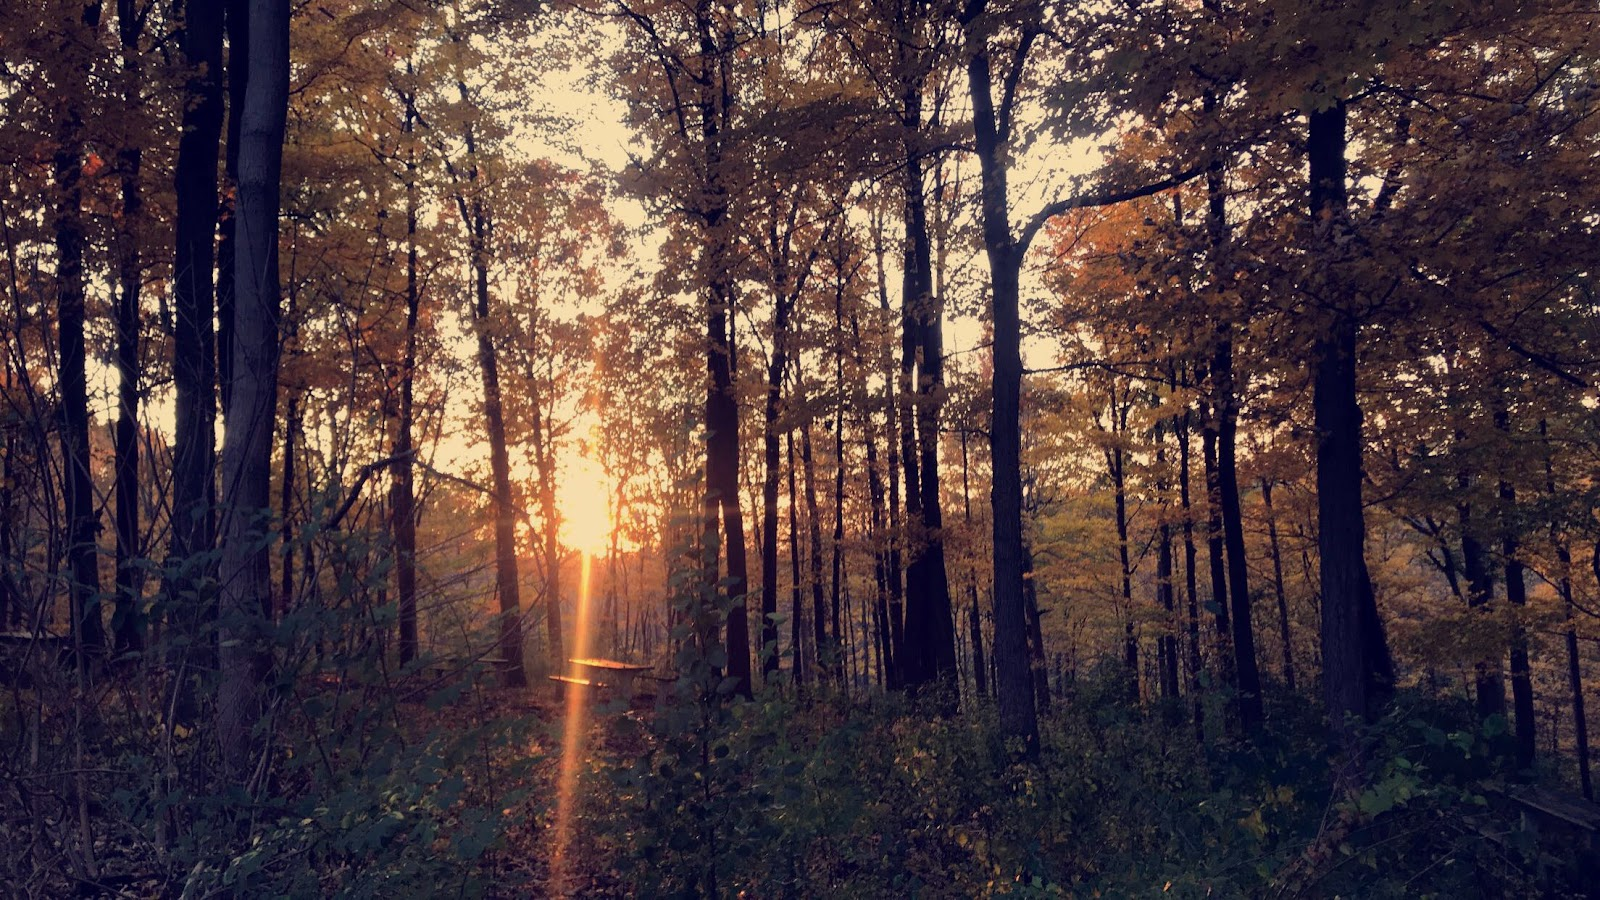 Trees with yellow leaves and bright sunlight shining through them